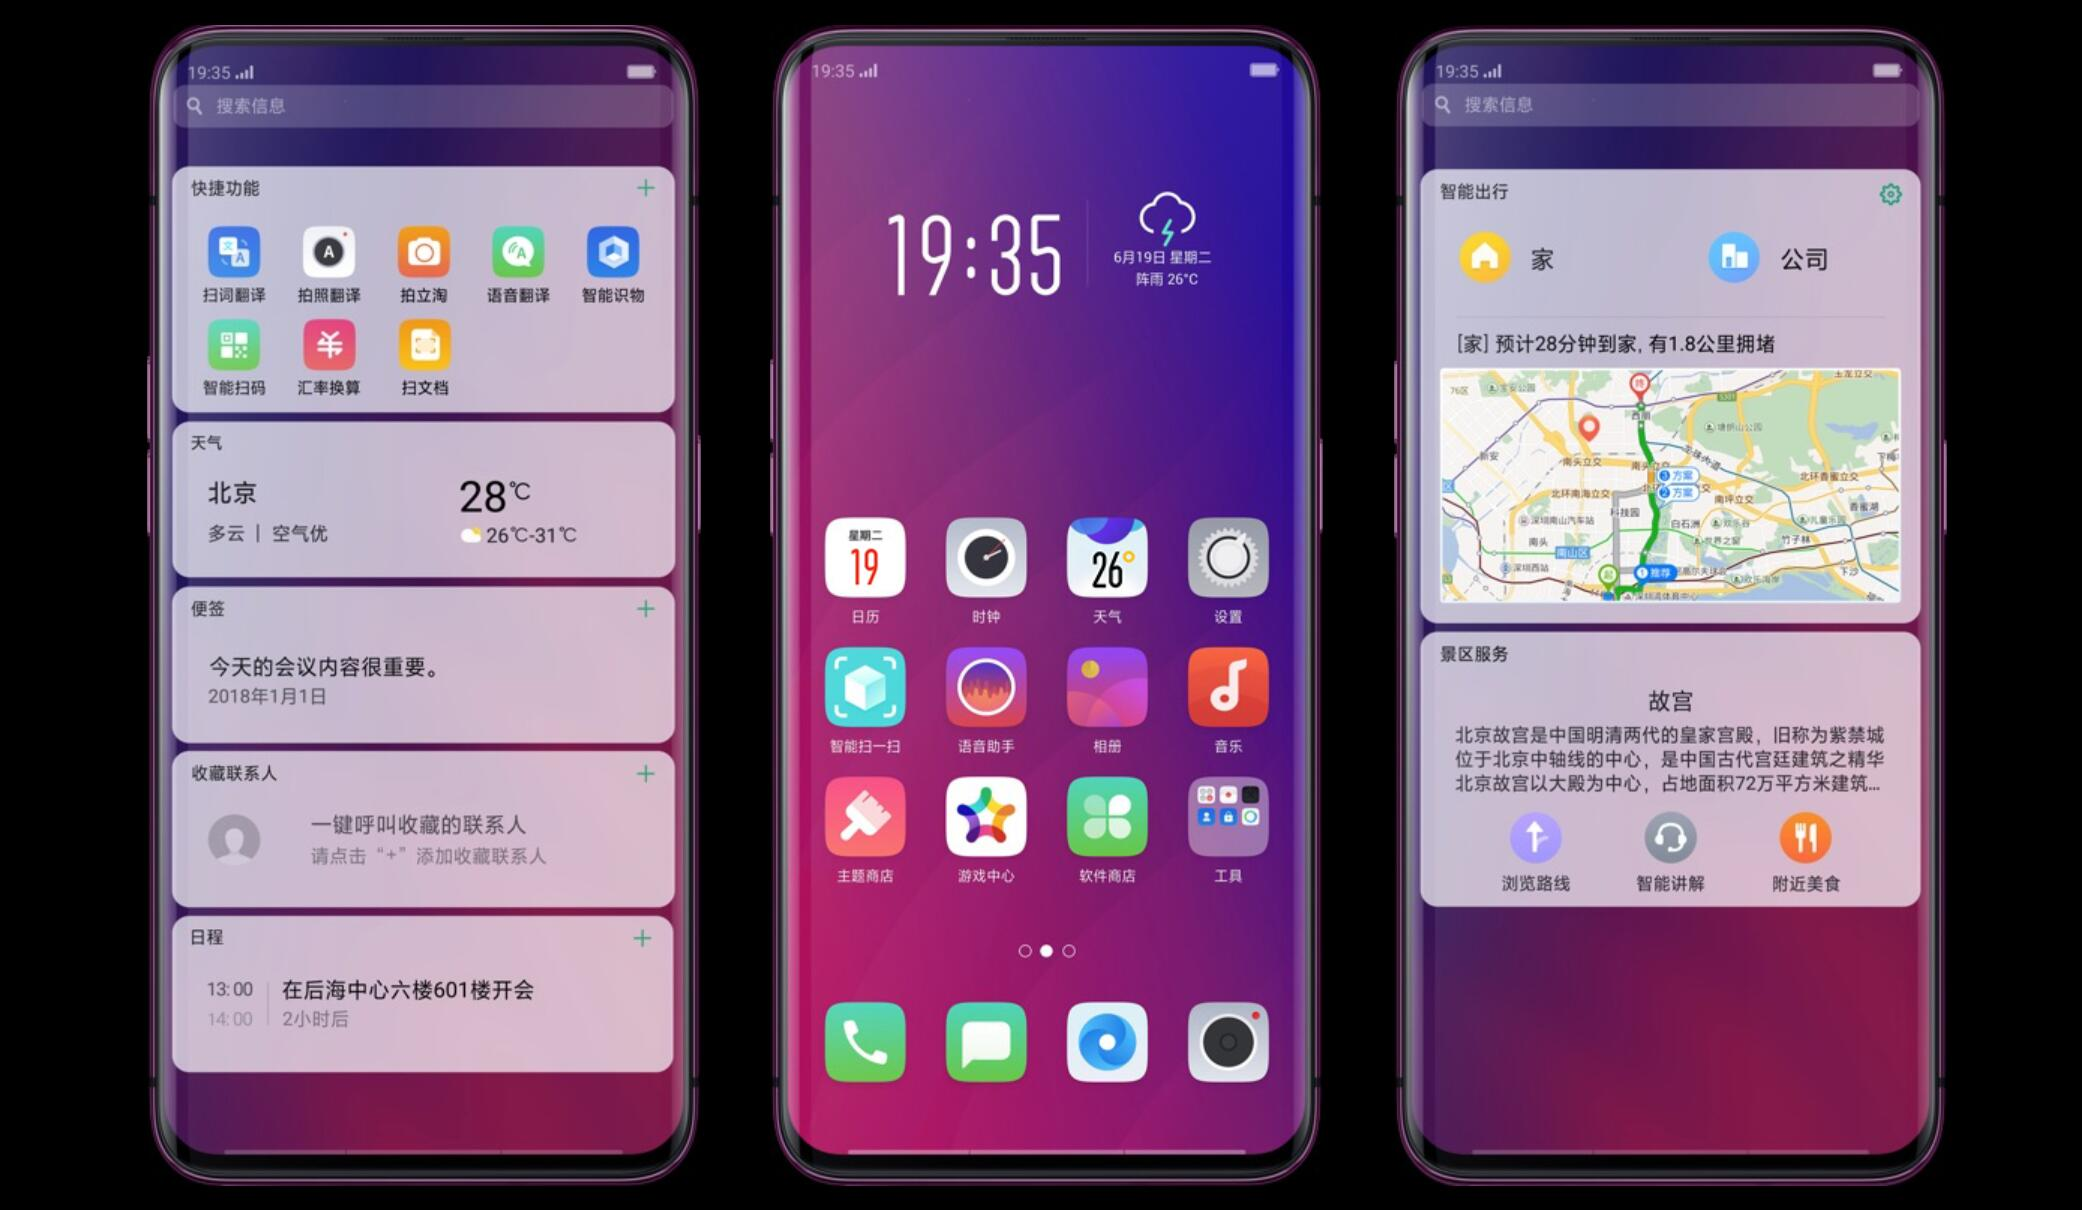 OPPO exec hints Find X2 may be released soon-CnTechPost